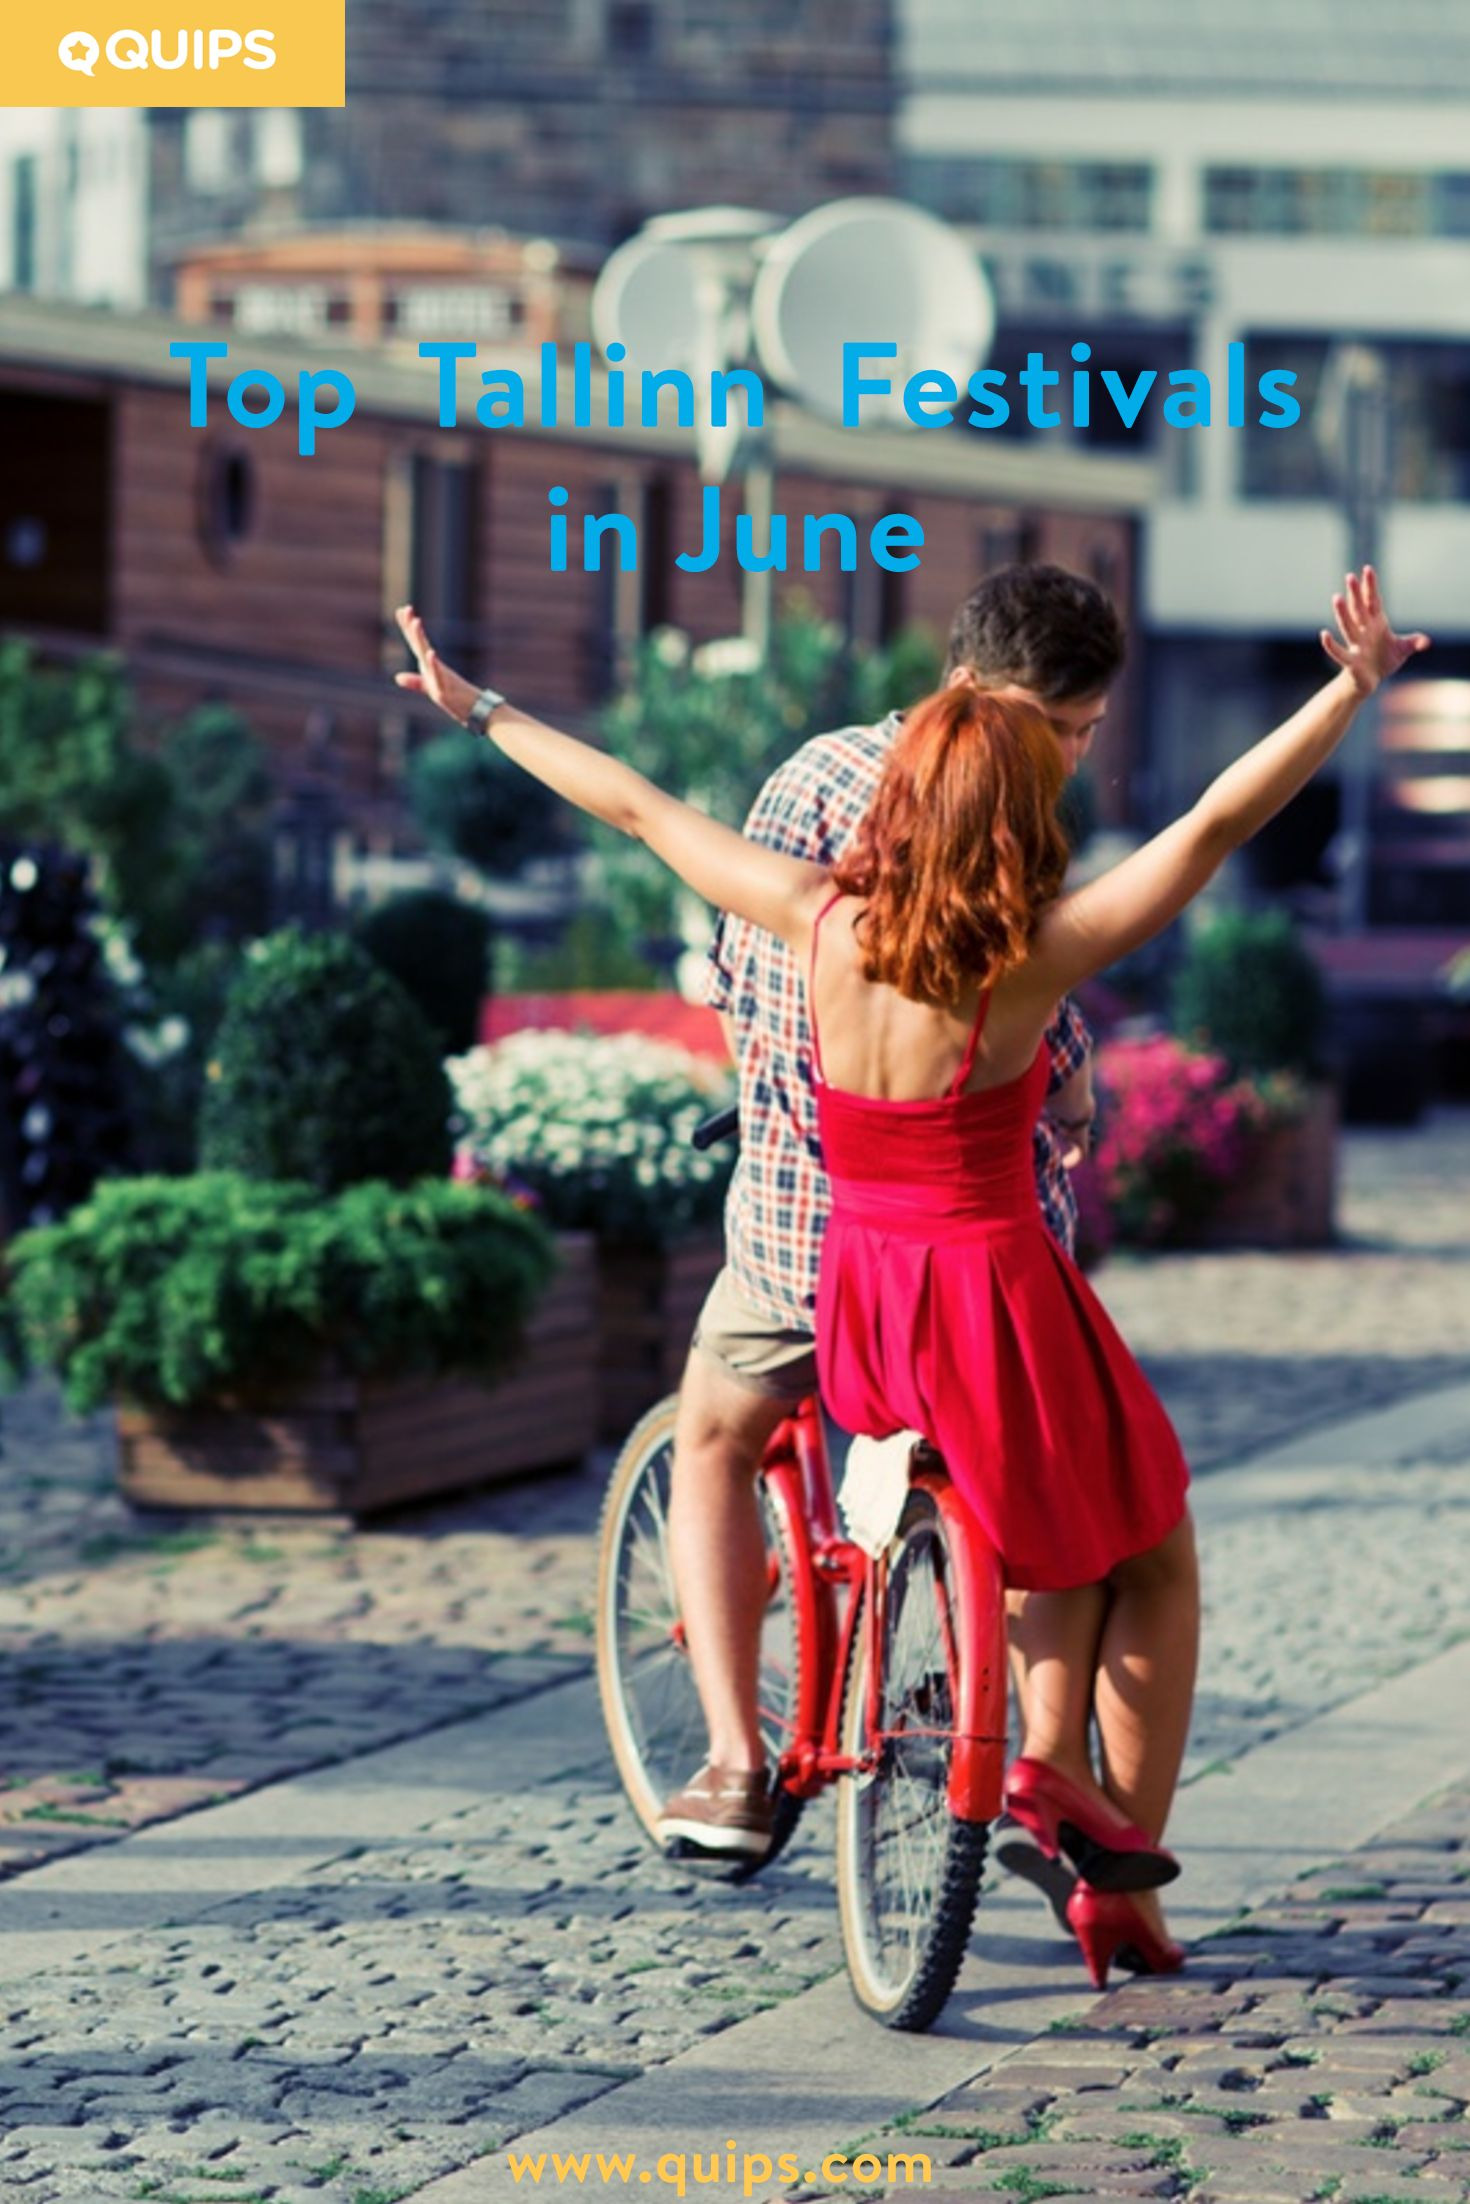 Summer is festival season at its best! Read our blog post for Top Tallinn Festivals in June. Tallinn, Festival, Blog, Summer, Festival Season, Tallinn Old Town, Festivals in Tallinn,  June, Estonia, Quips